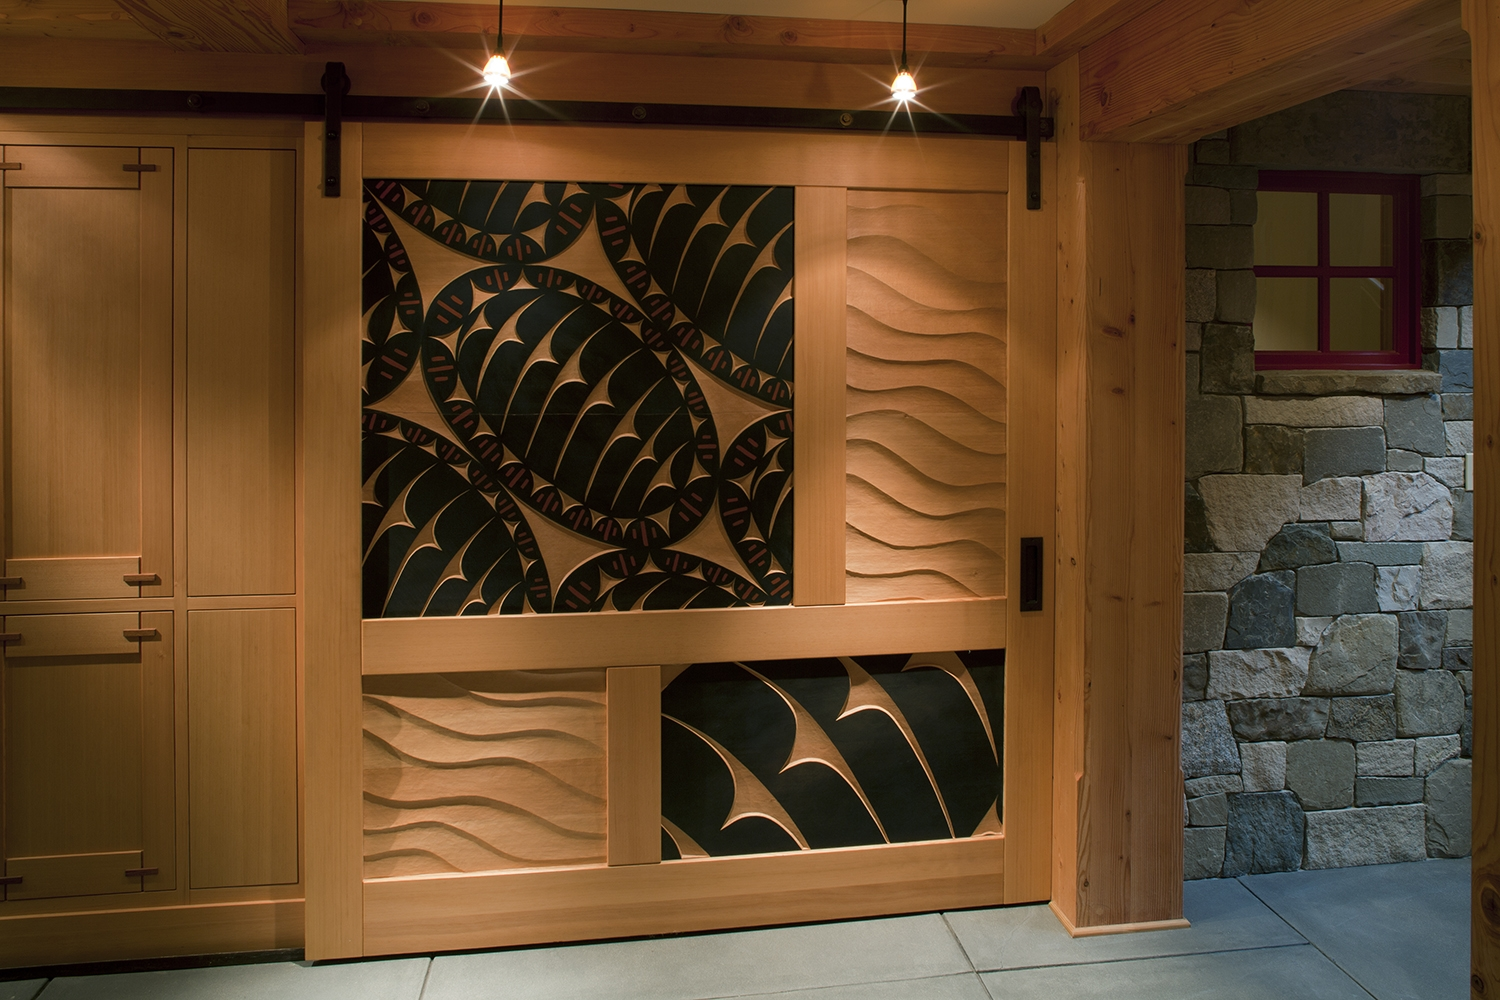 3. Carved Interior Sliding Door in Washington State - Collaboration with Acclaimed Local Carver David Franklin